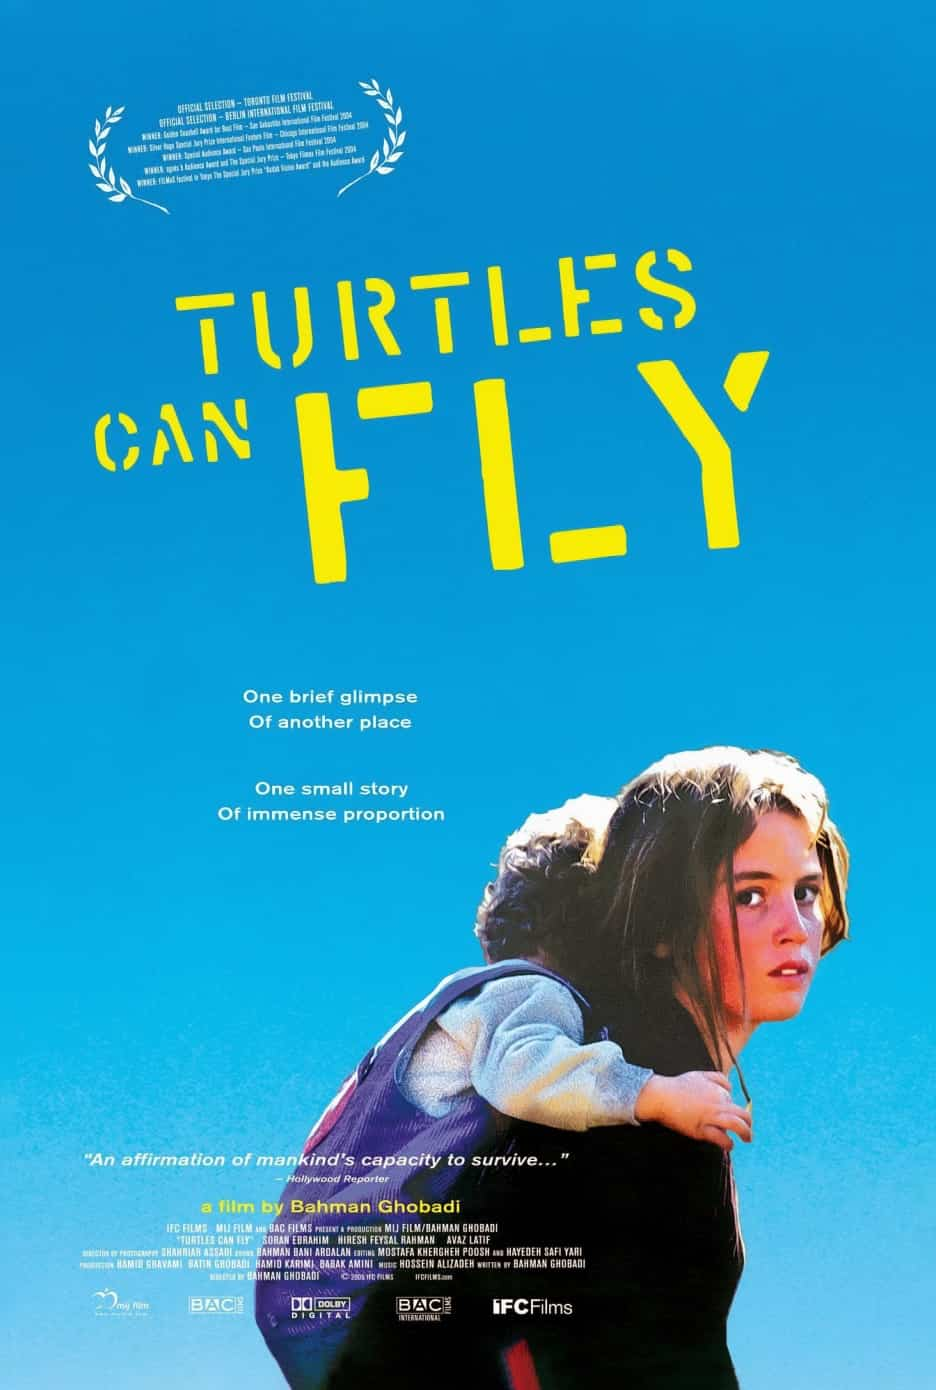 Turtles Can Fly (2004) poster